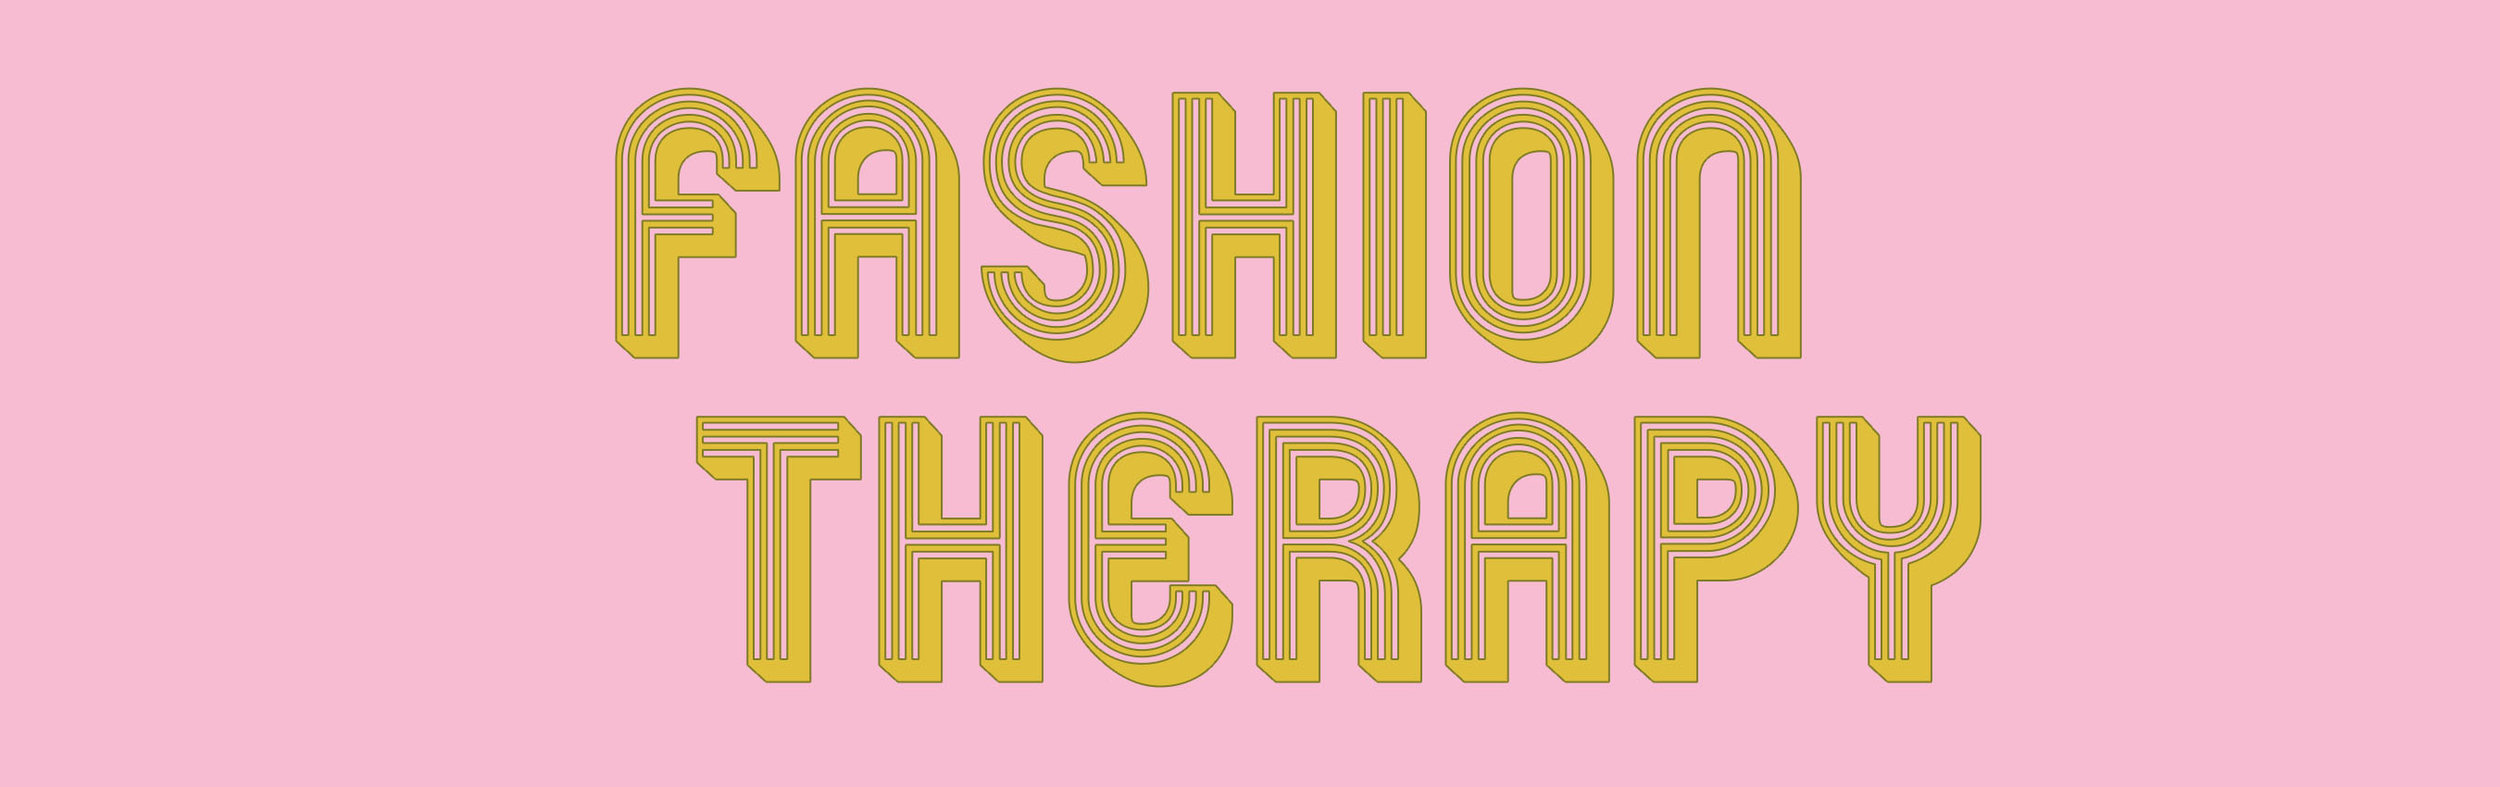 fashion therapy banner.jpg